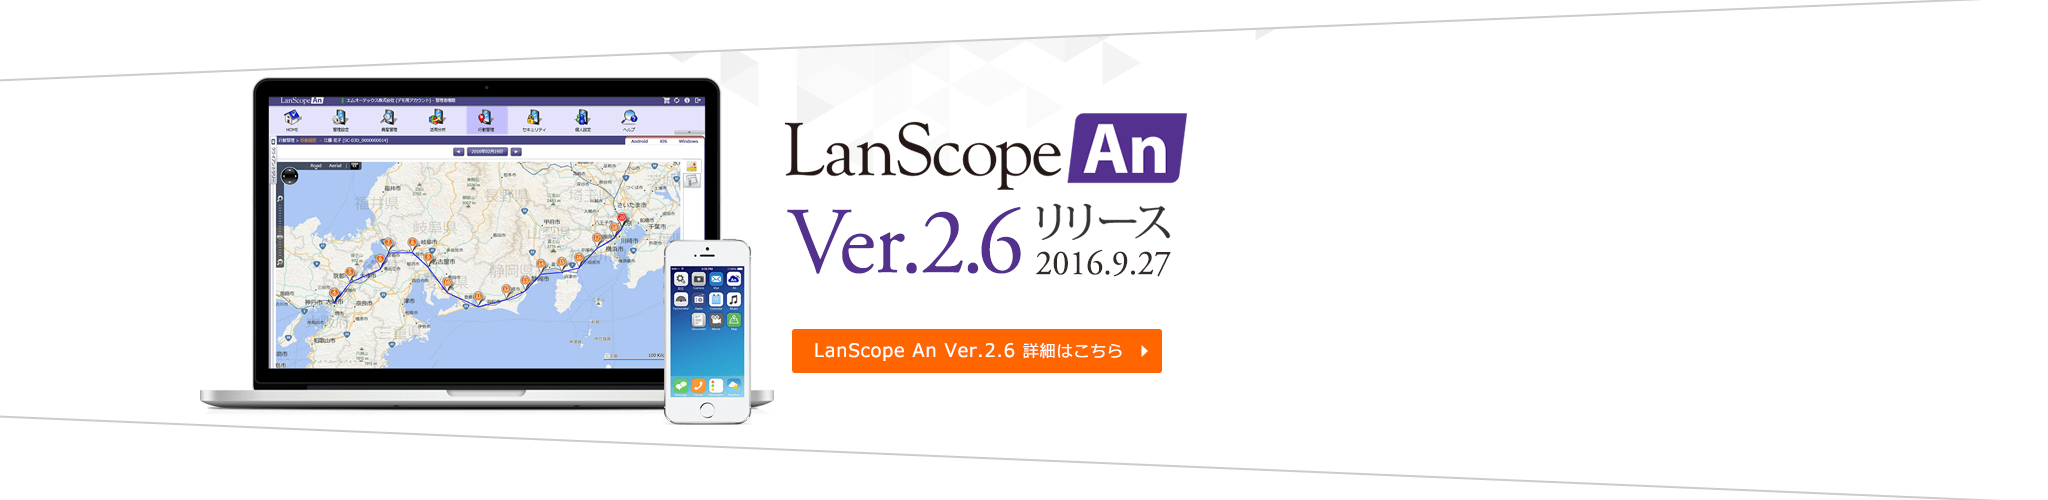 LanScope An Ver.2.6リリース